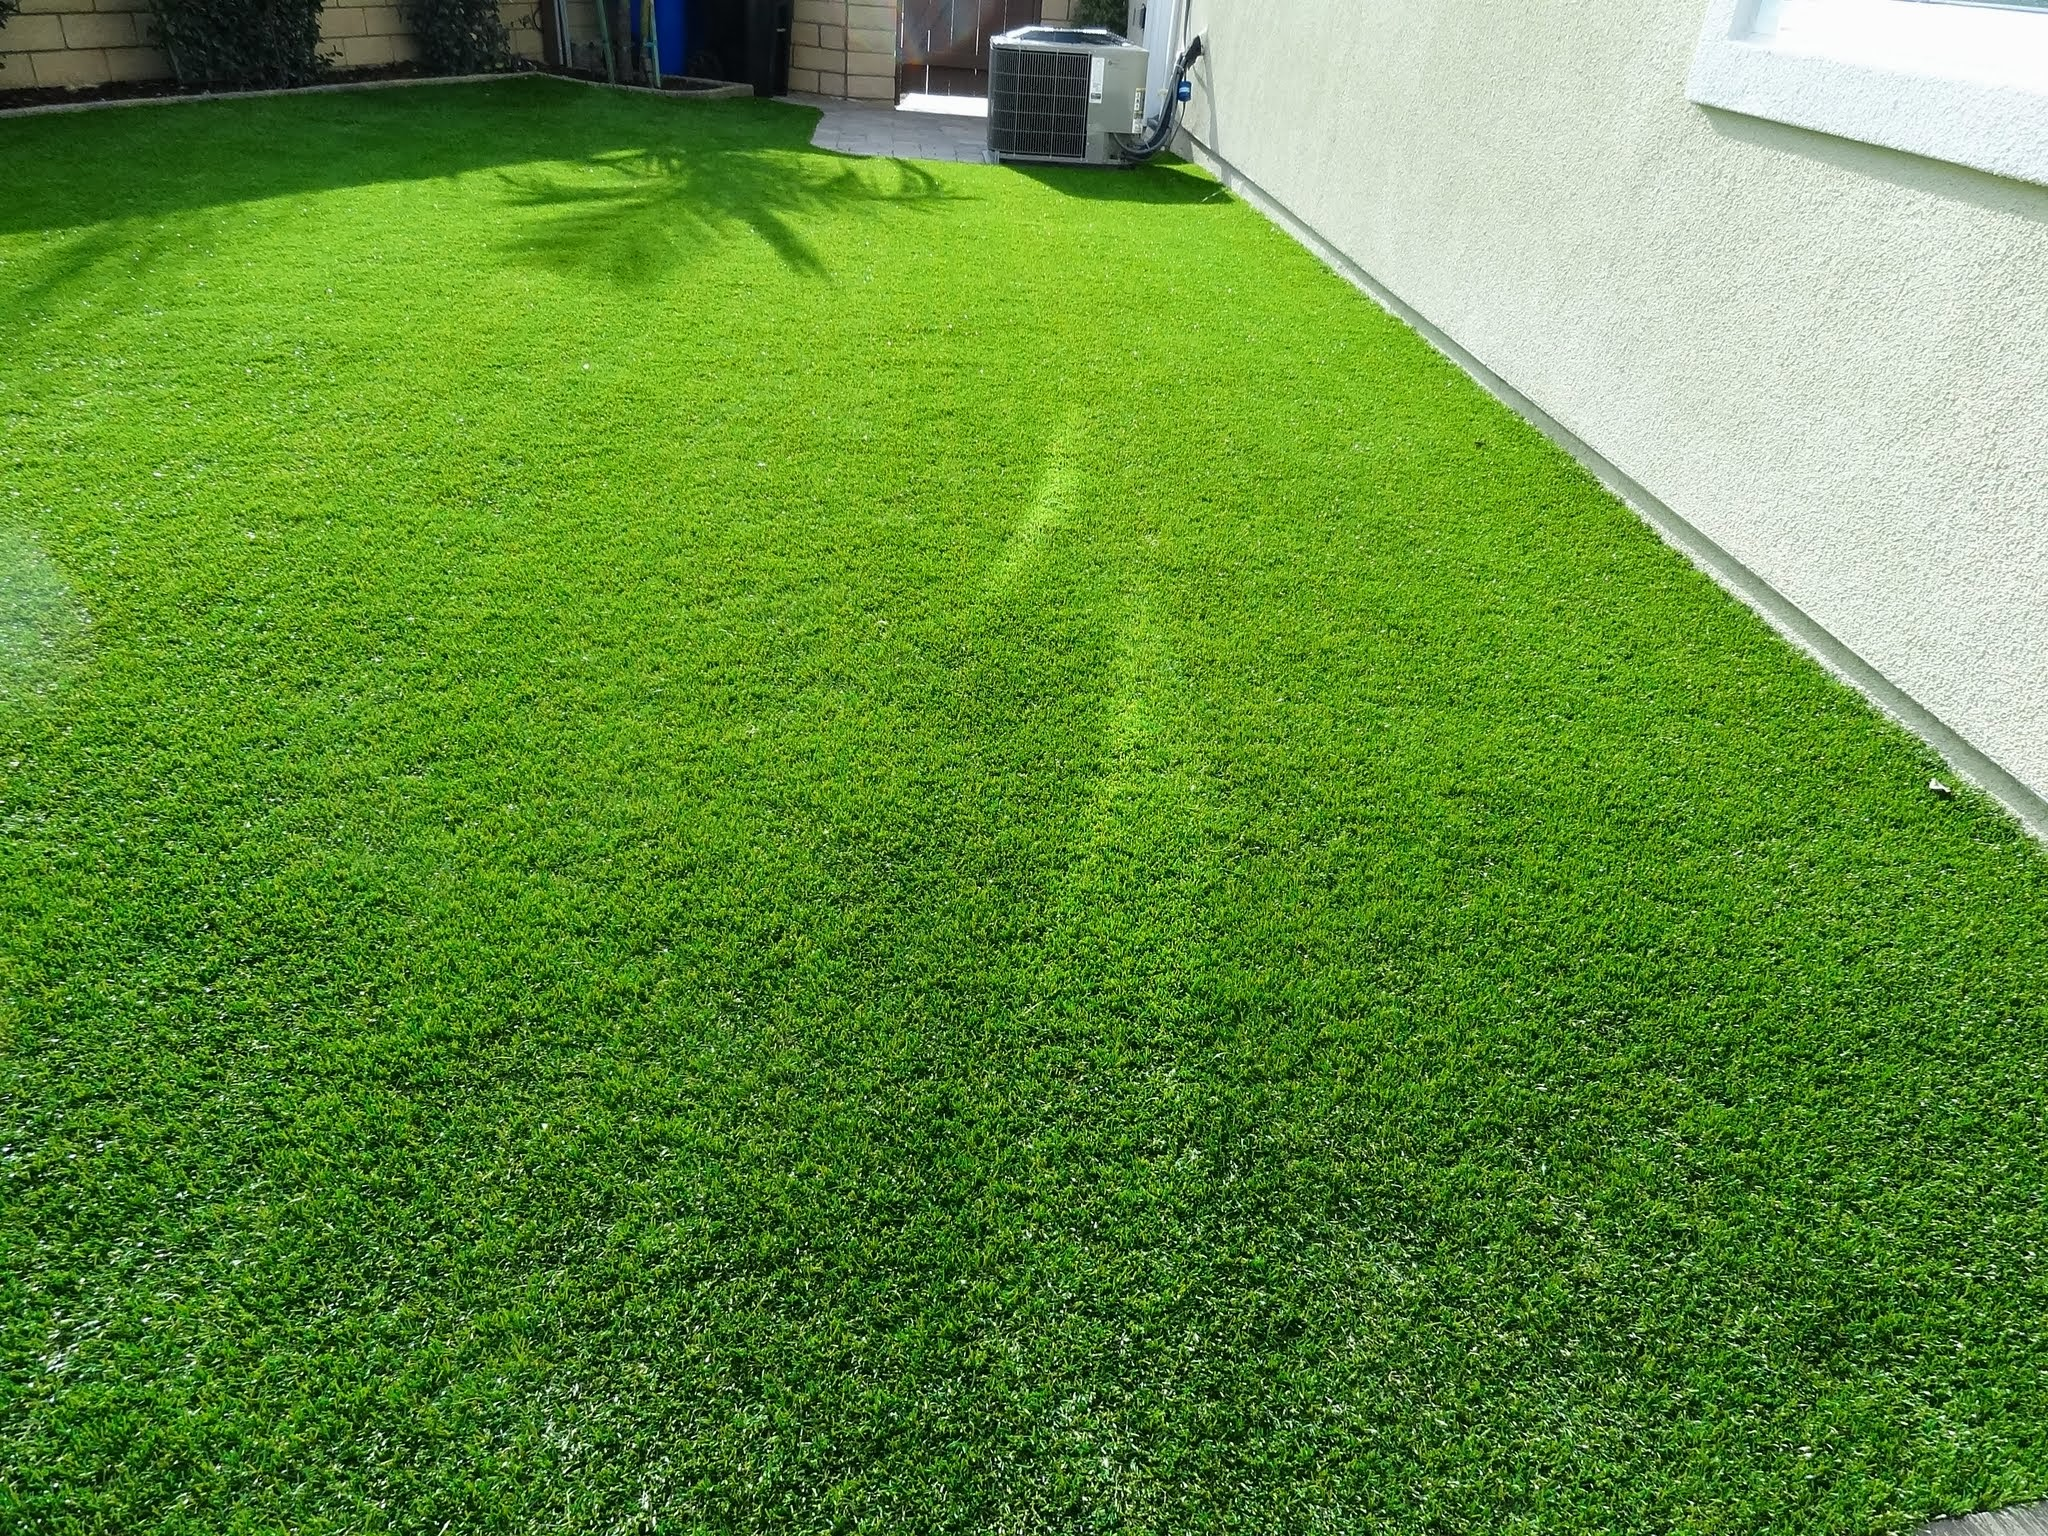 Energy-Efficient-Windows-Melting-Artificial-Grass